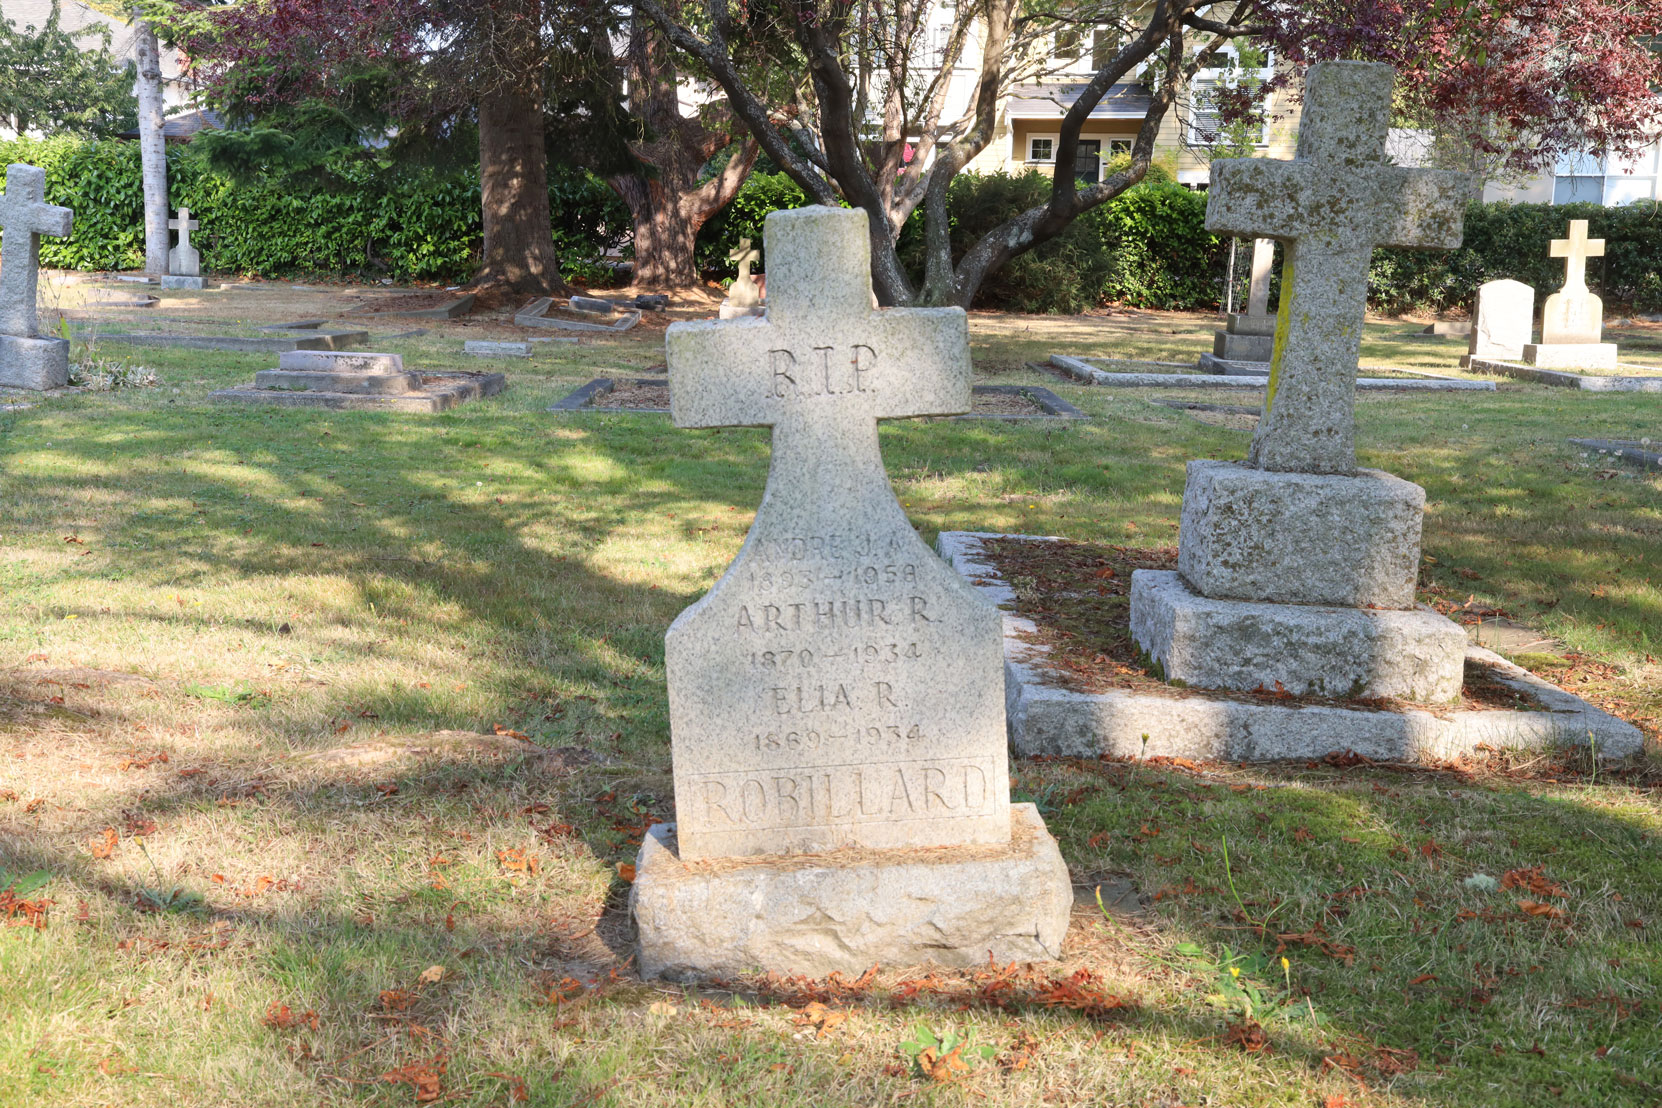 Arthur Robillard grave, Ross Bay Cemetery, Victoria, BC (photo by Author)